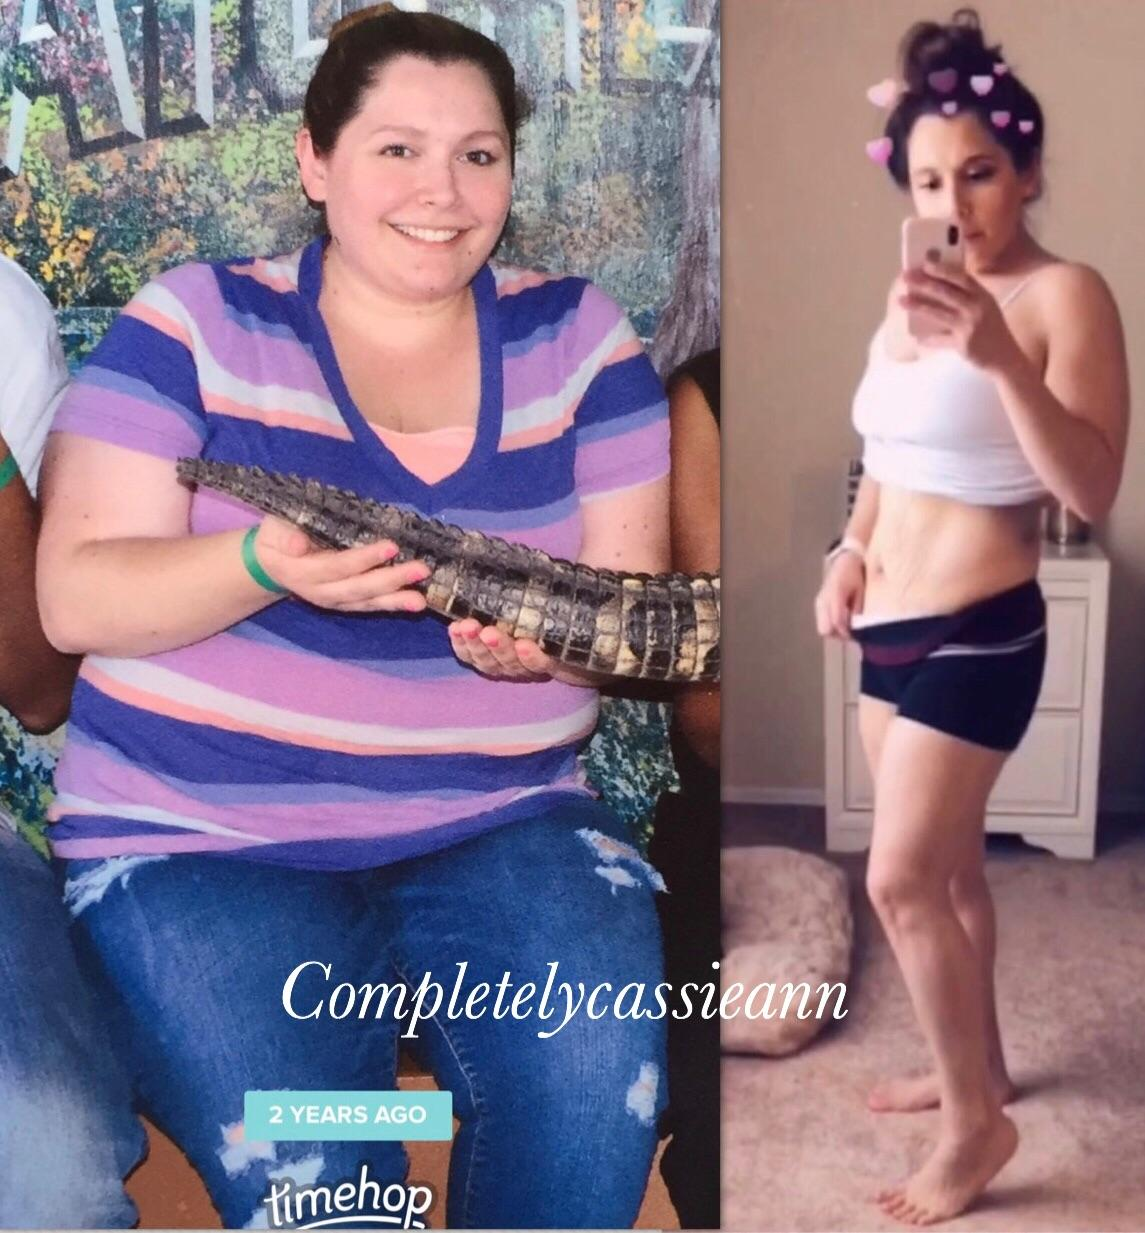 5 foot 1 Female 112 lbs Fat Loss Before and After 252 lbs to 140 lbs